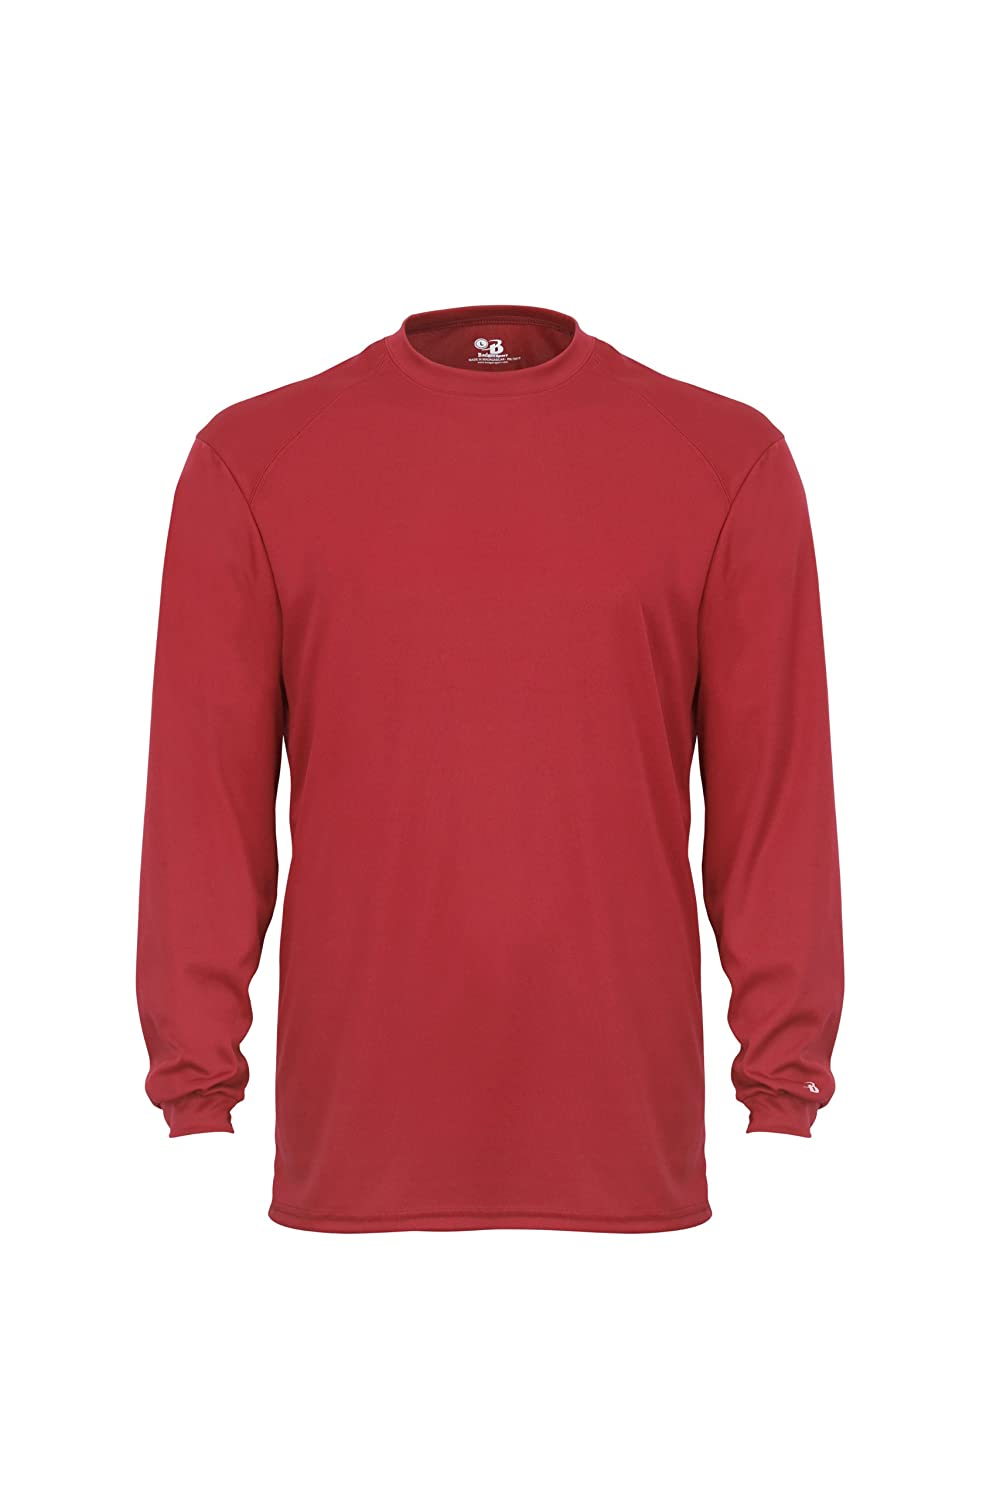 Long sleeve maroon shirt custom shirt for Amazon custom t shirts